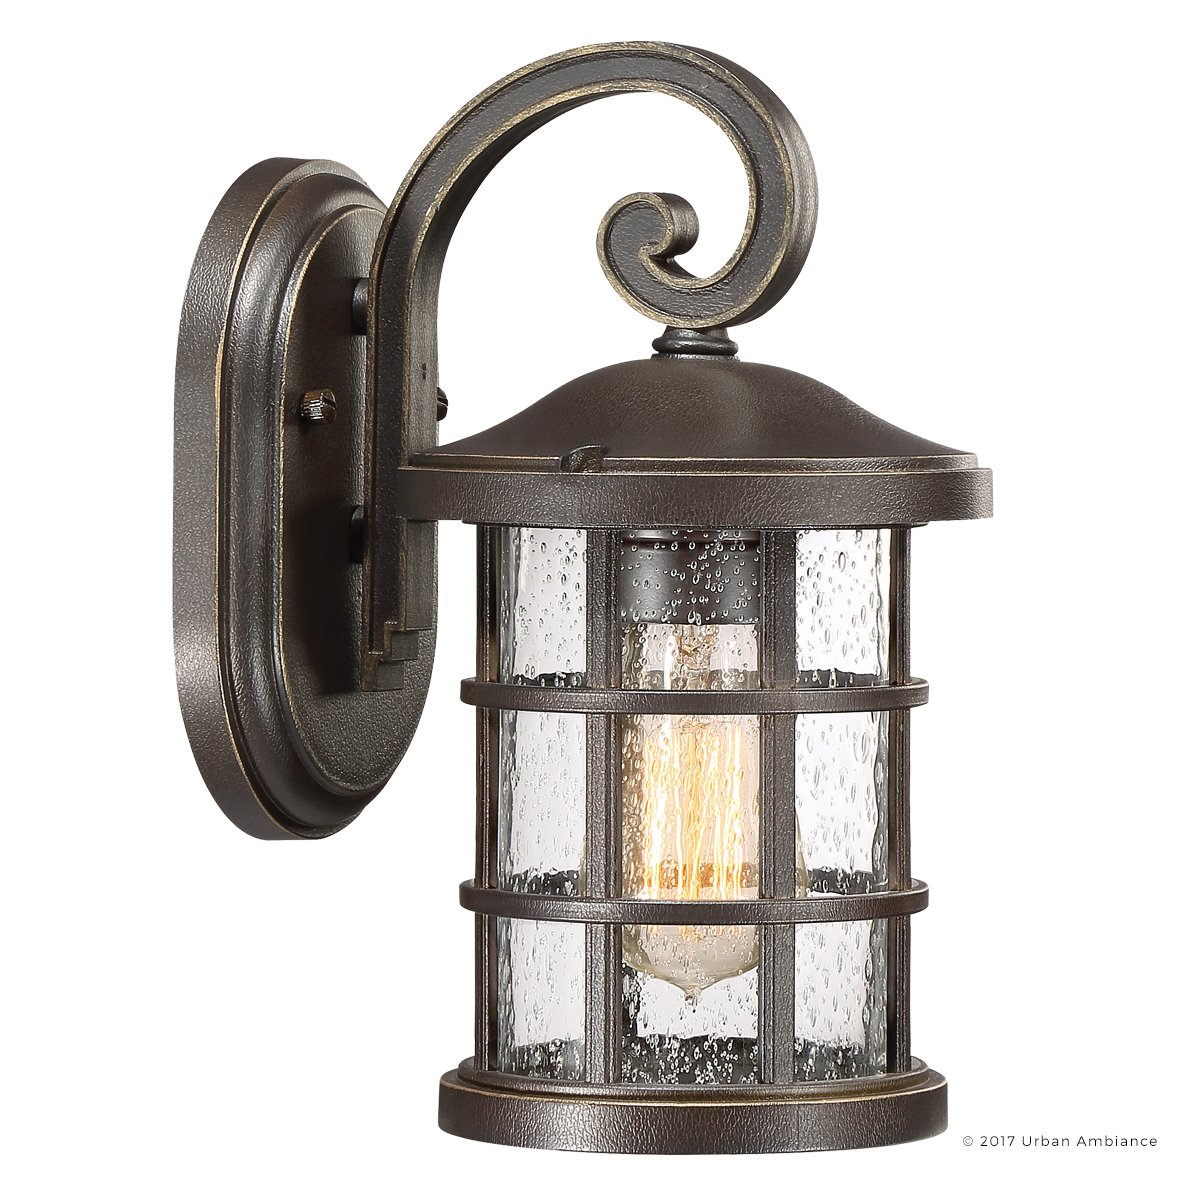 Luxury Craftsman Outdoor Wall Light, Small Size: 11'' H x 6'' W, with Tudor Style Elements, Wrought Iron Design, Oil Rubbed Parisian Bronze Finish and Seeded Glass, UQL1041 by Urban Ambiance by Urban Ambiance (Image #8)